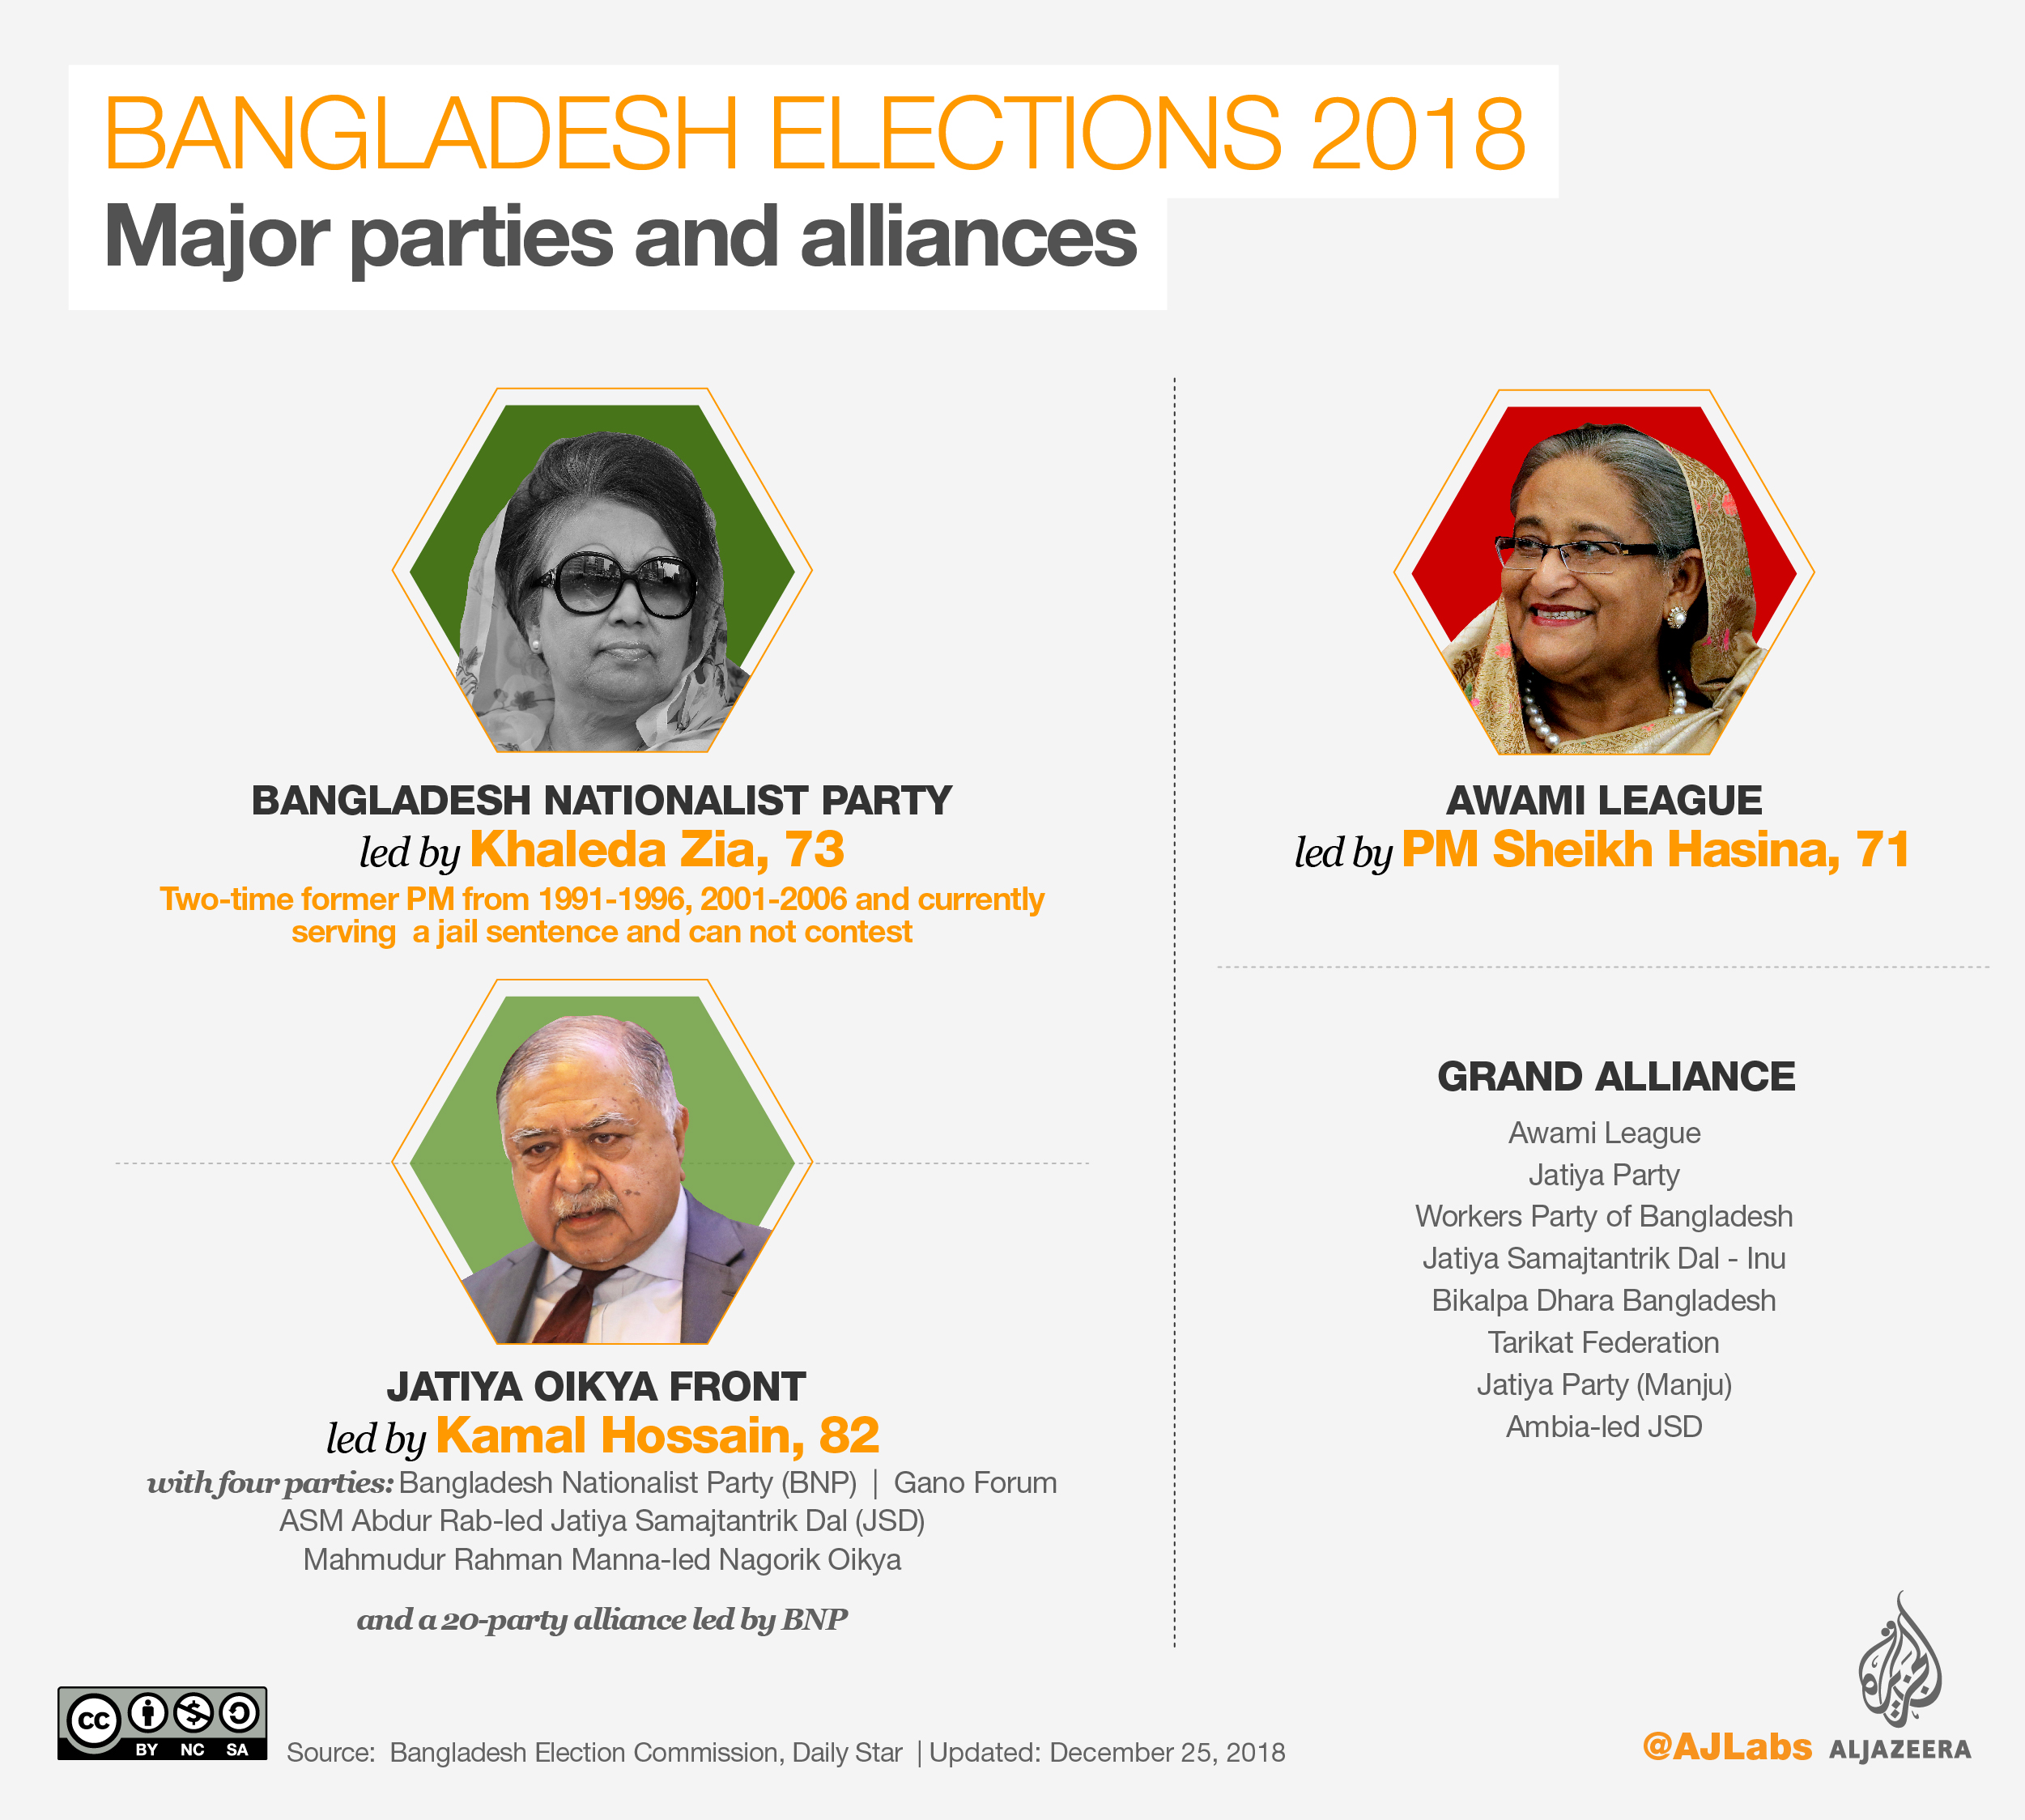 Bangladesh elections 2018: What you need to know